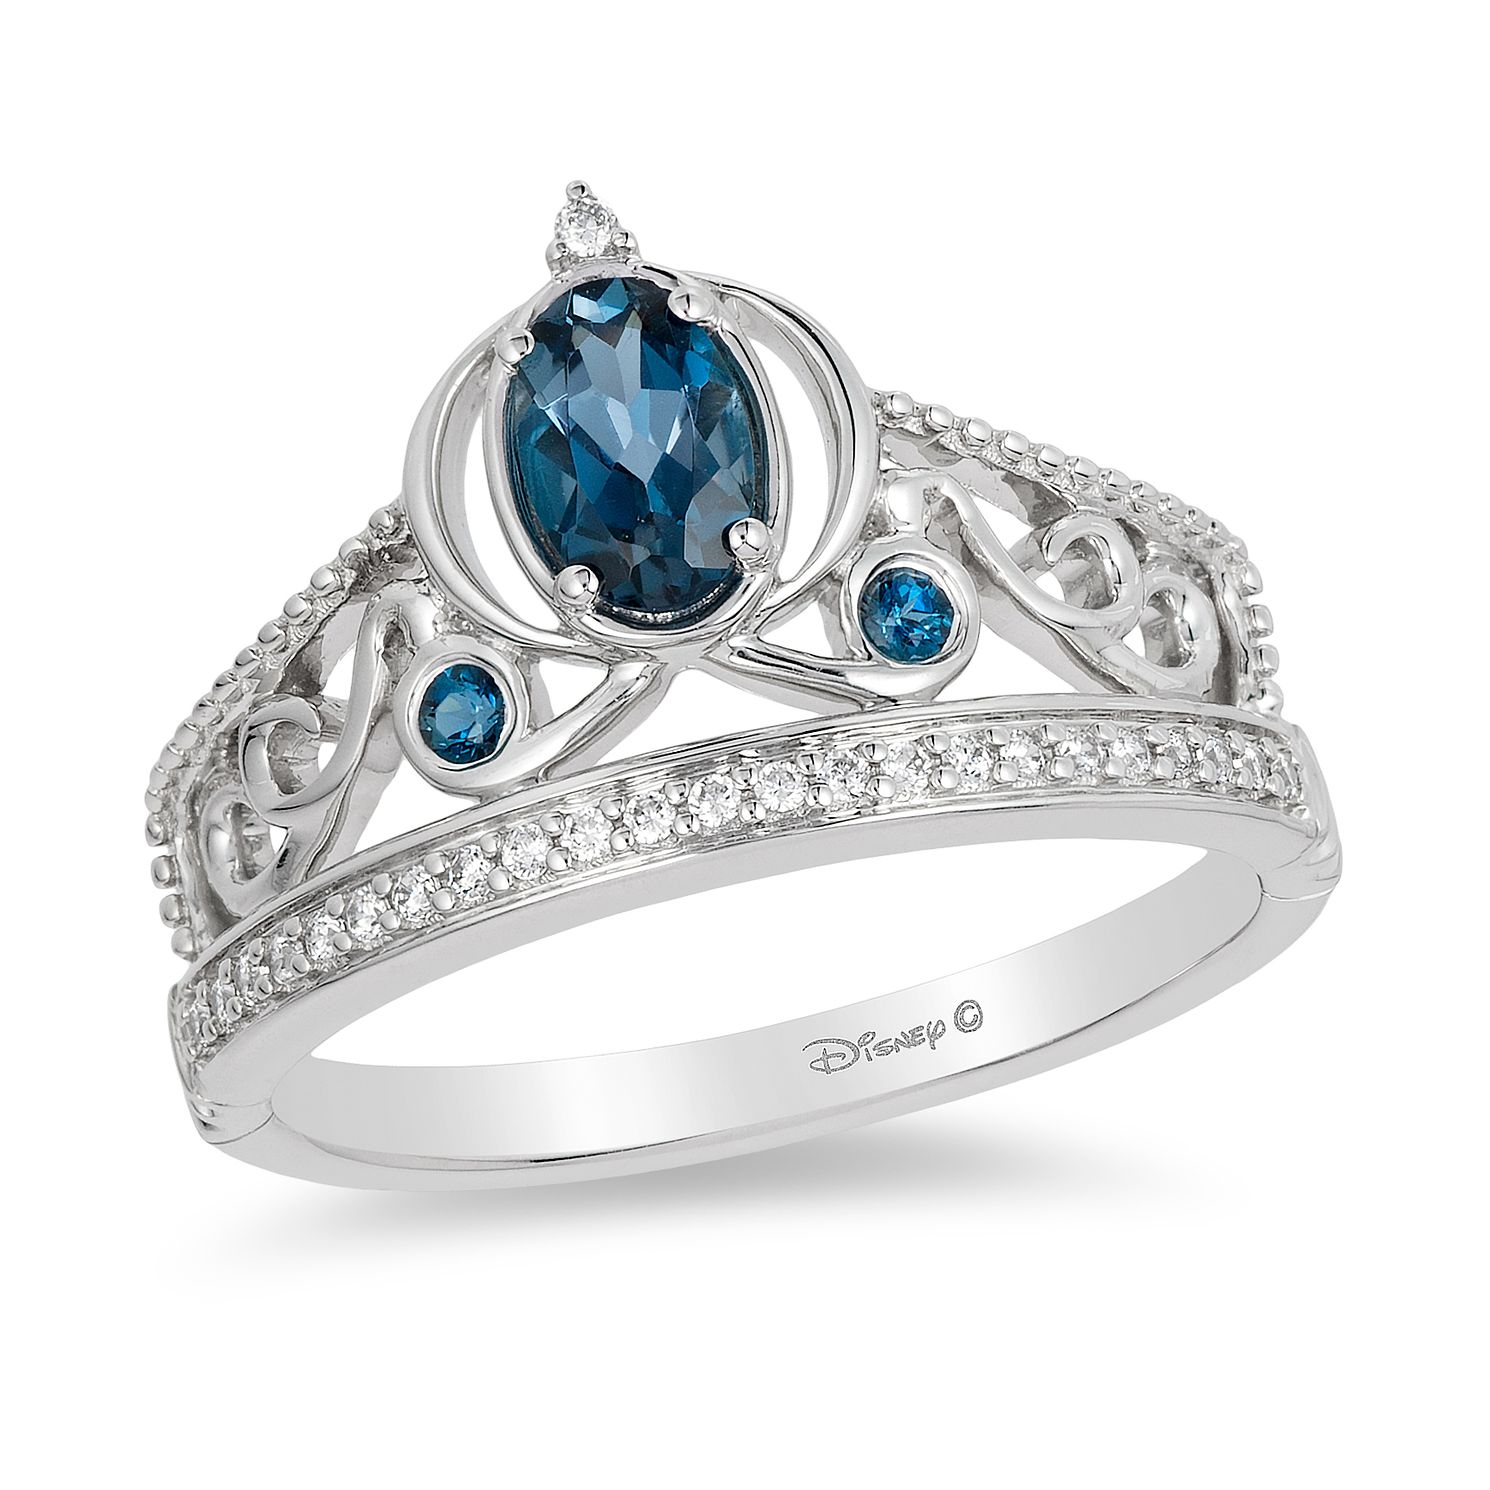 ds promise enchanted engagement carriage in rings cinderella disney ring